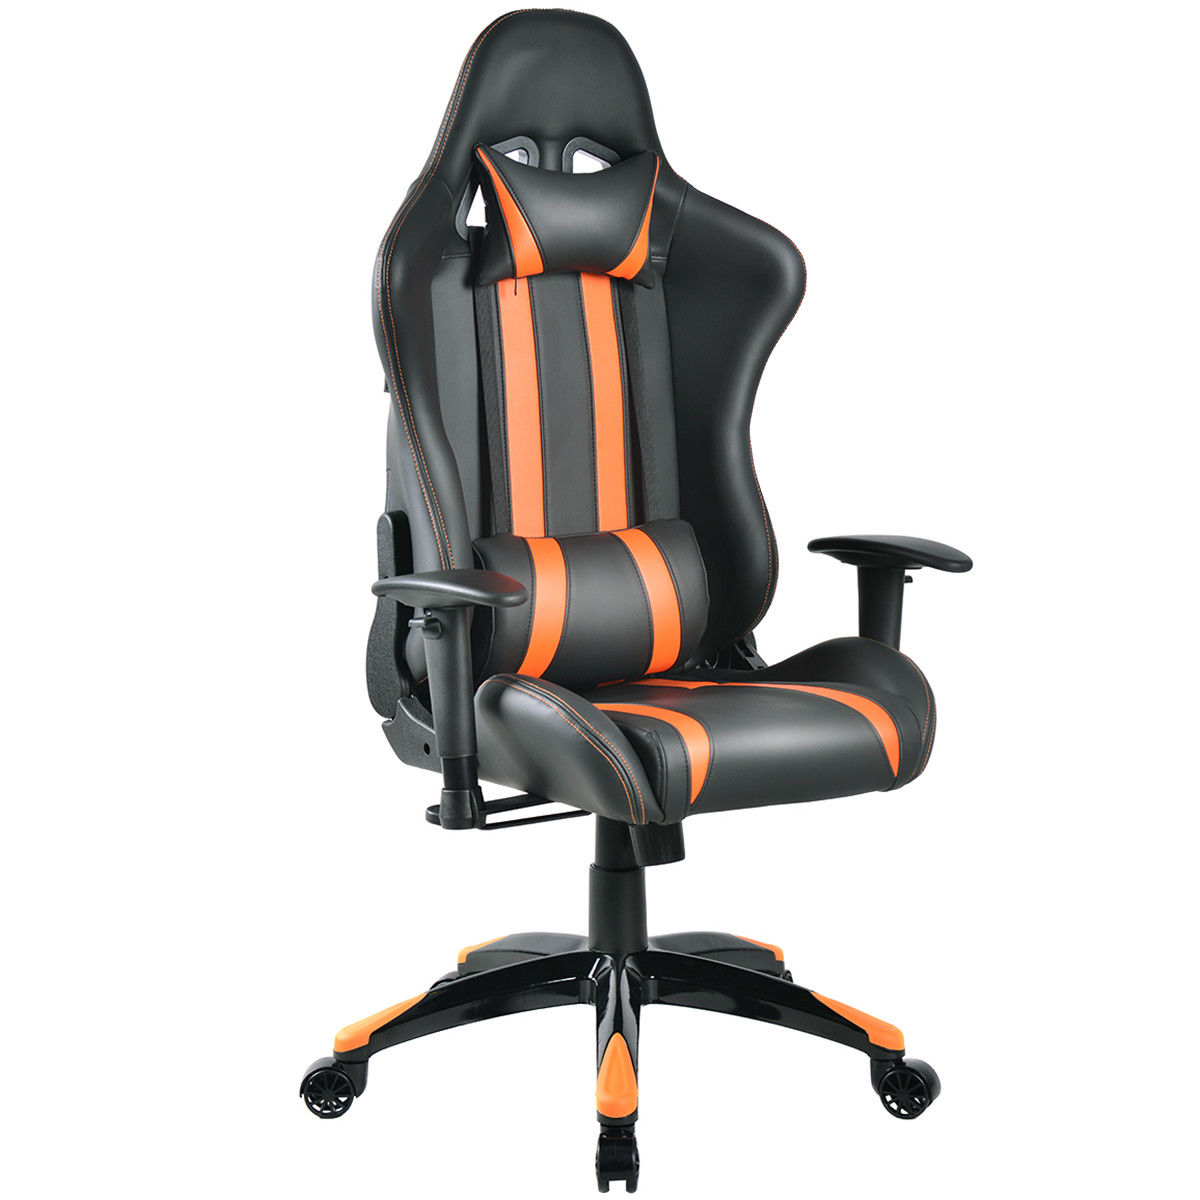 Reclining Gaming Chair Best Patio Chairs Giantex Racing High Back Ergonomic